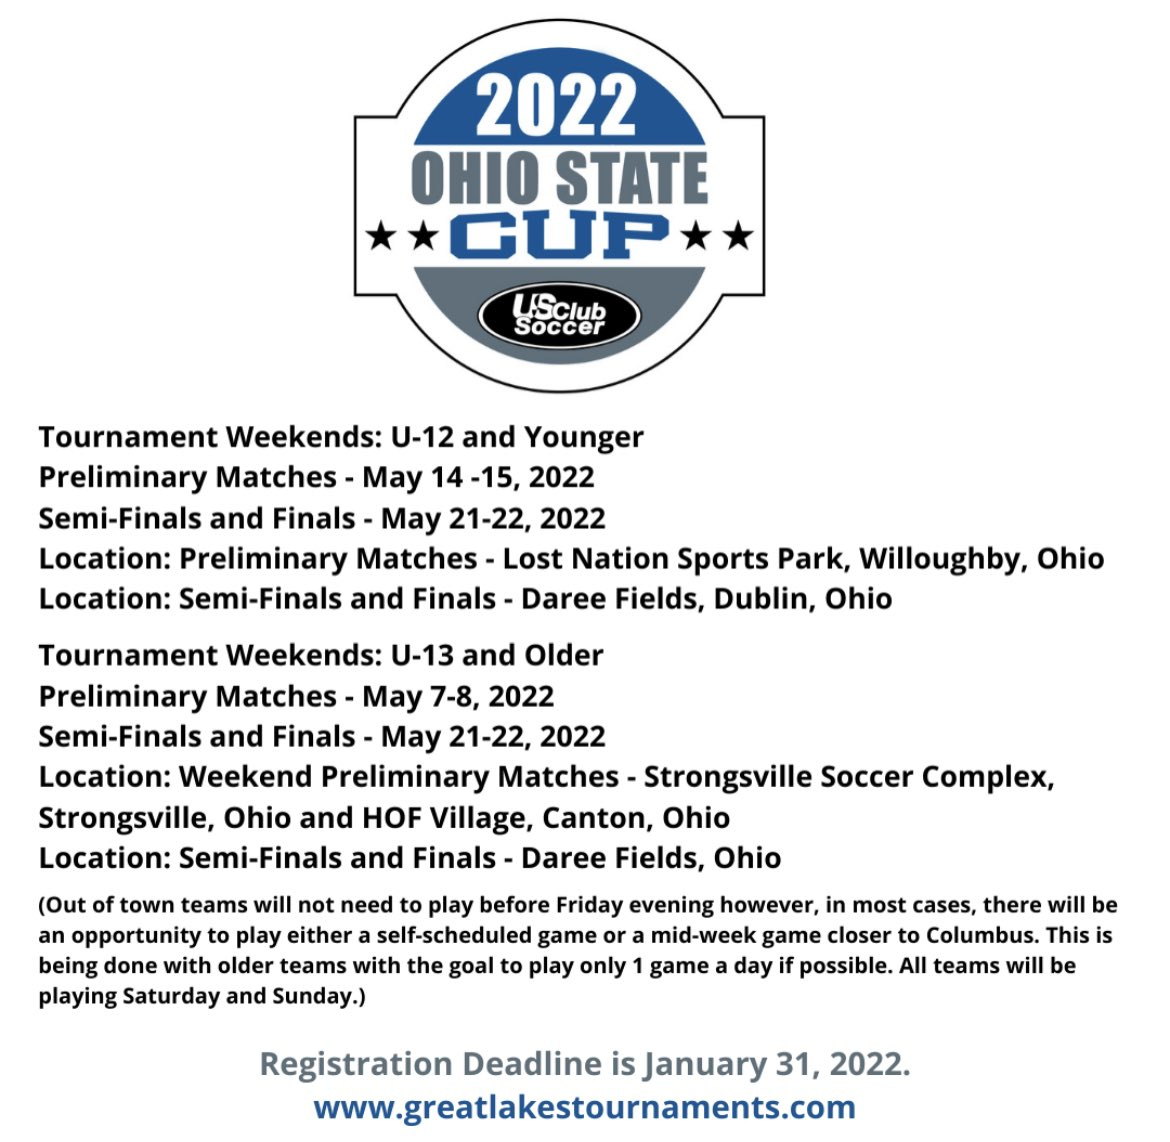 Registration is now open for the 2022 Ohio State Cup!  Register by January 31, 2022 at https://t.co/J0r7mIE0py